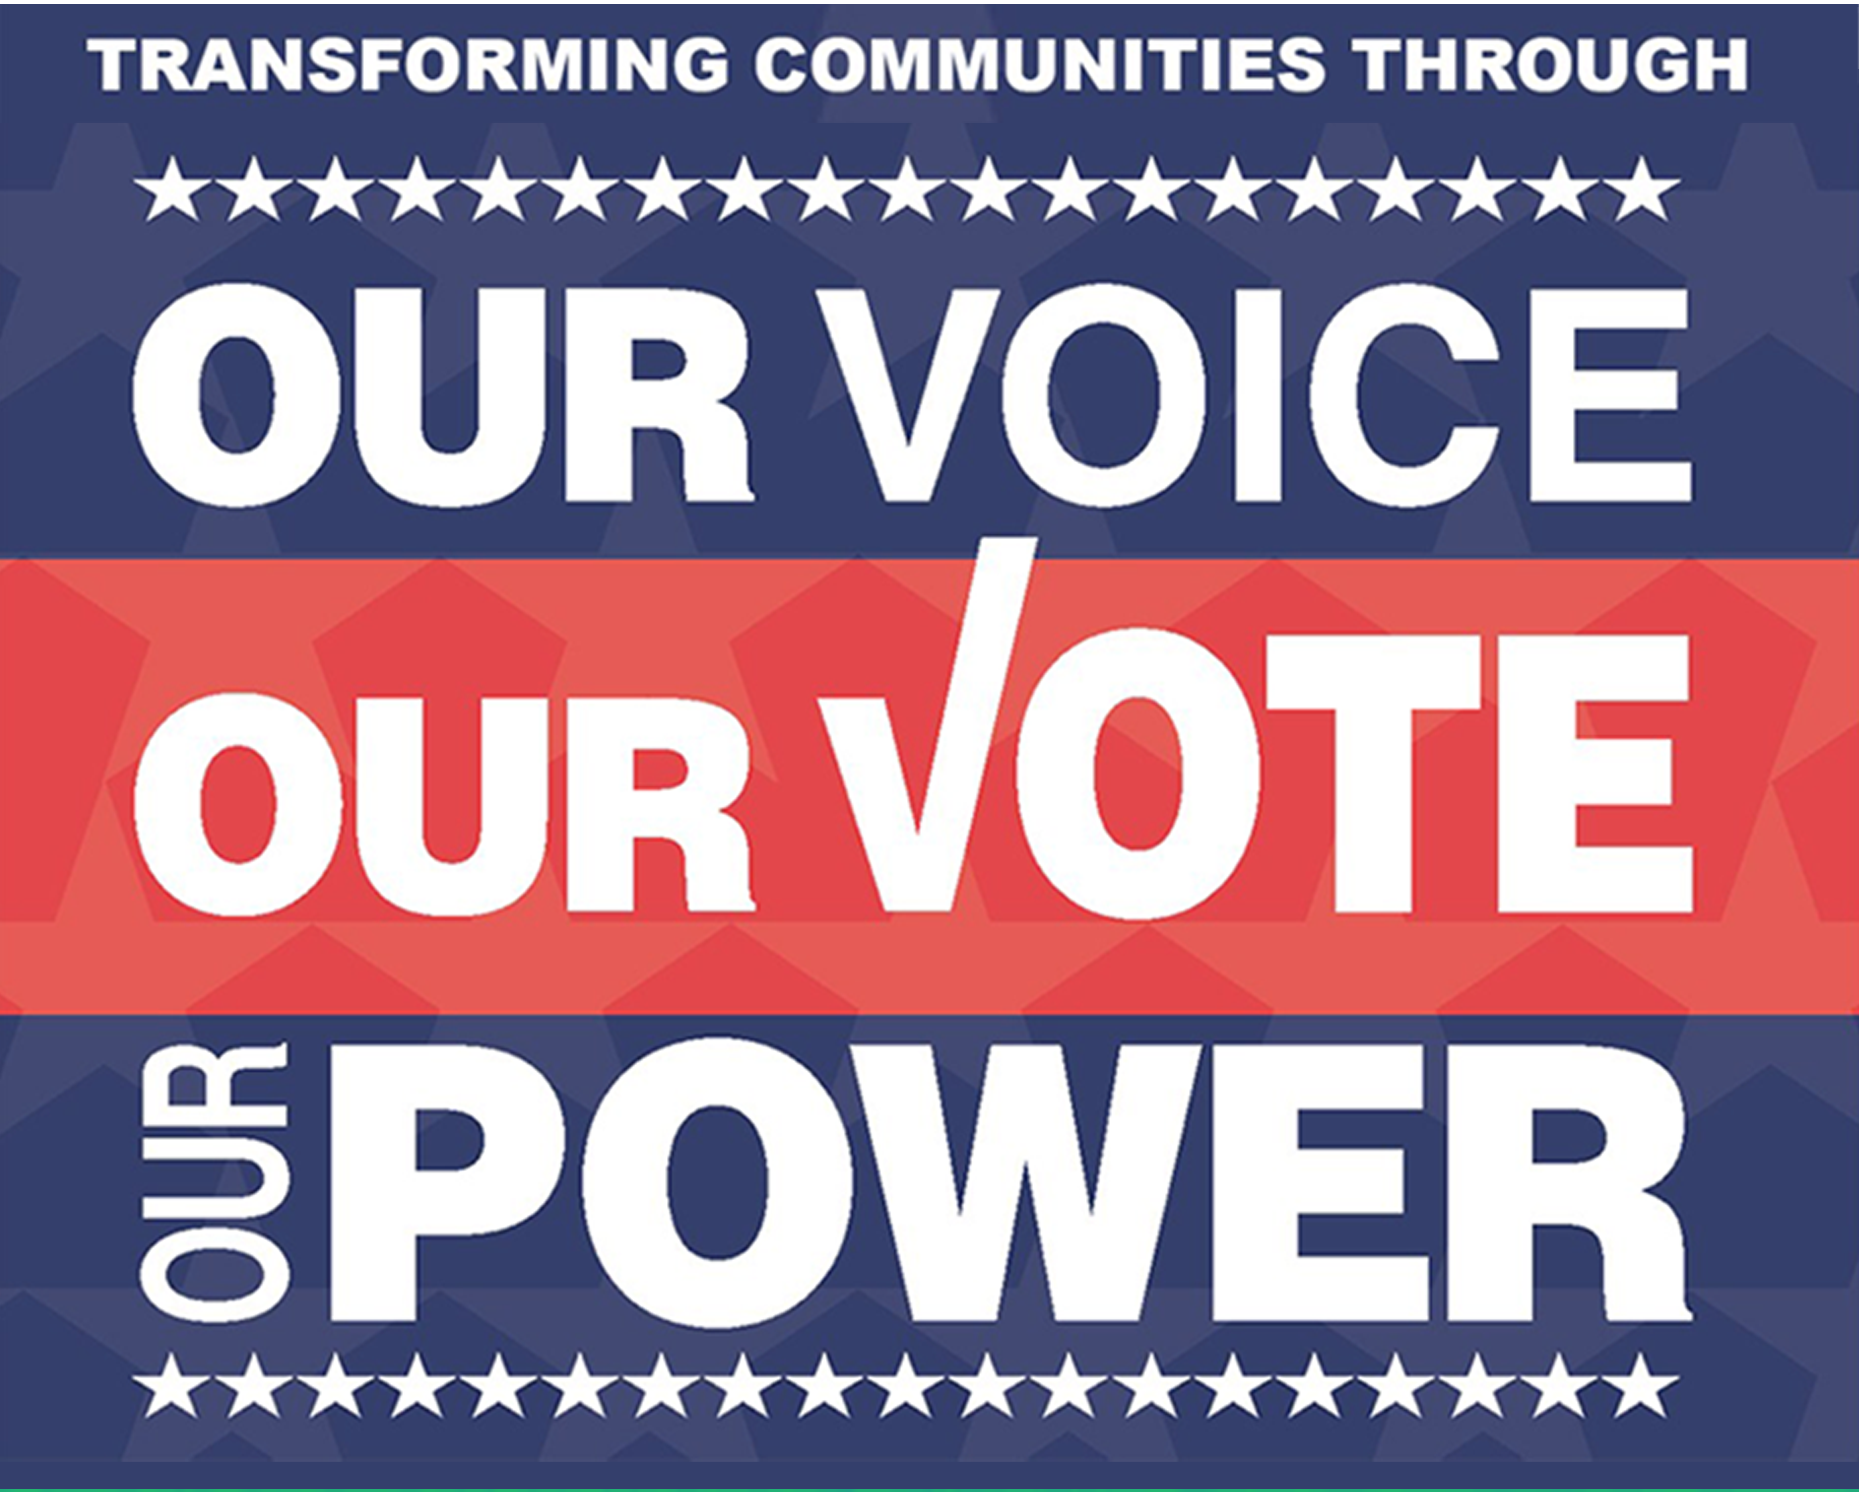 The Links Foundation, Incorporated hosts dialogue, elevating to a national conversation issues impacting communities of color, encourage mobilization of voters, and honor those forging a path for justice, positive change, and empowerment.